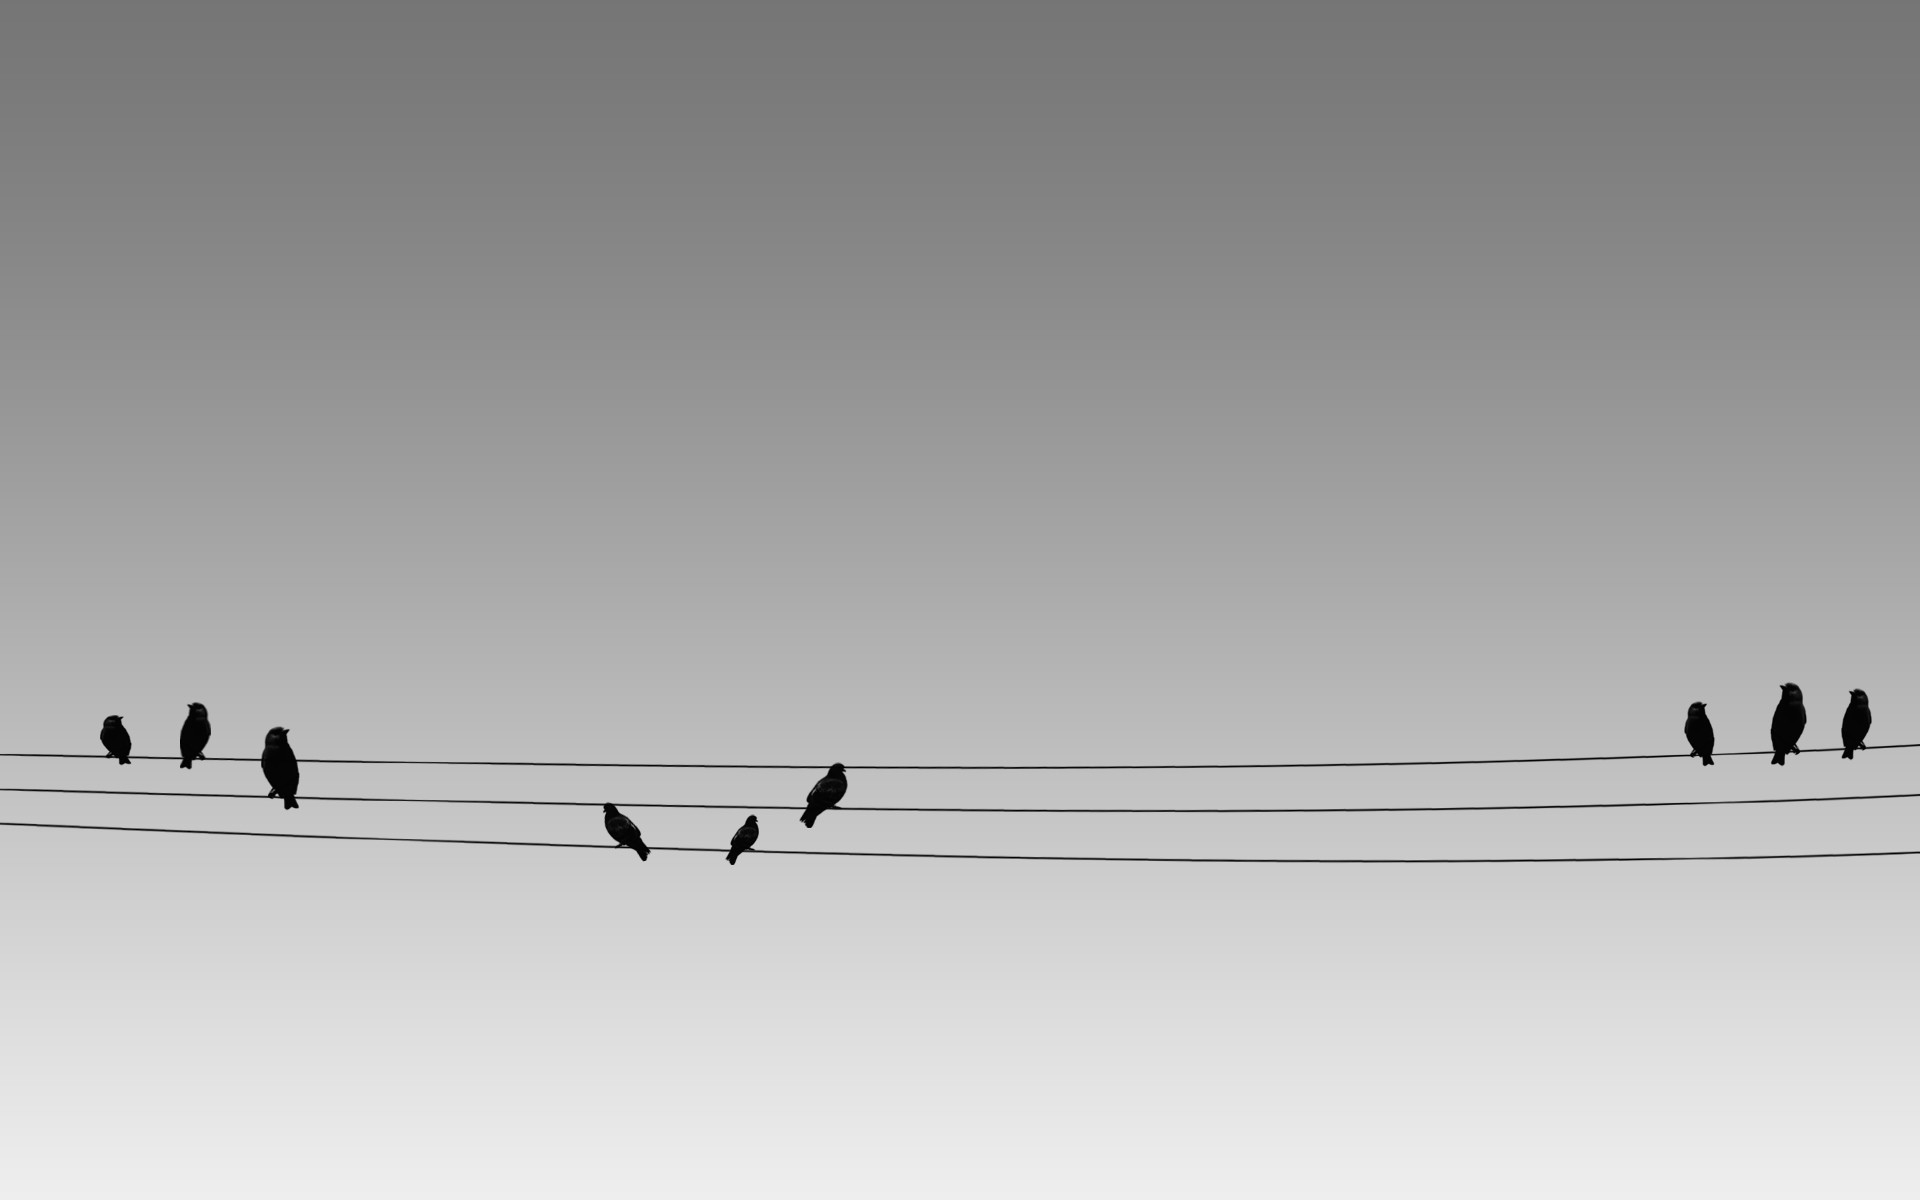 Birds wires minimalistic HD Wallpaper